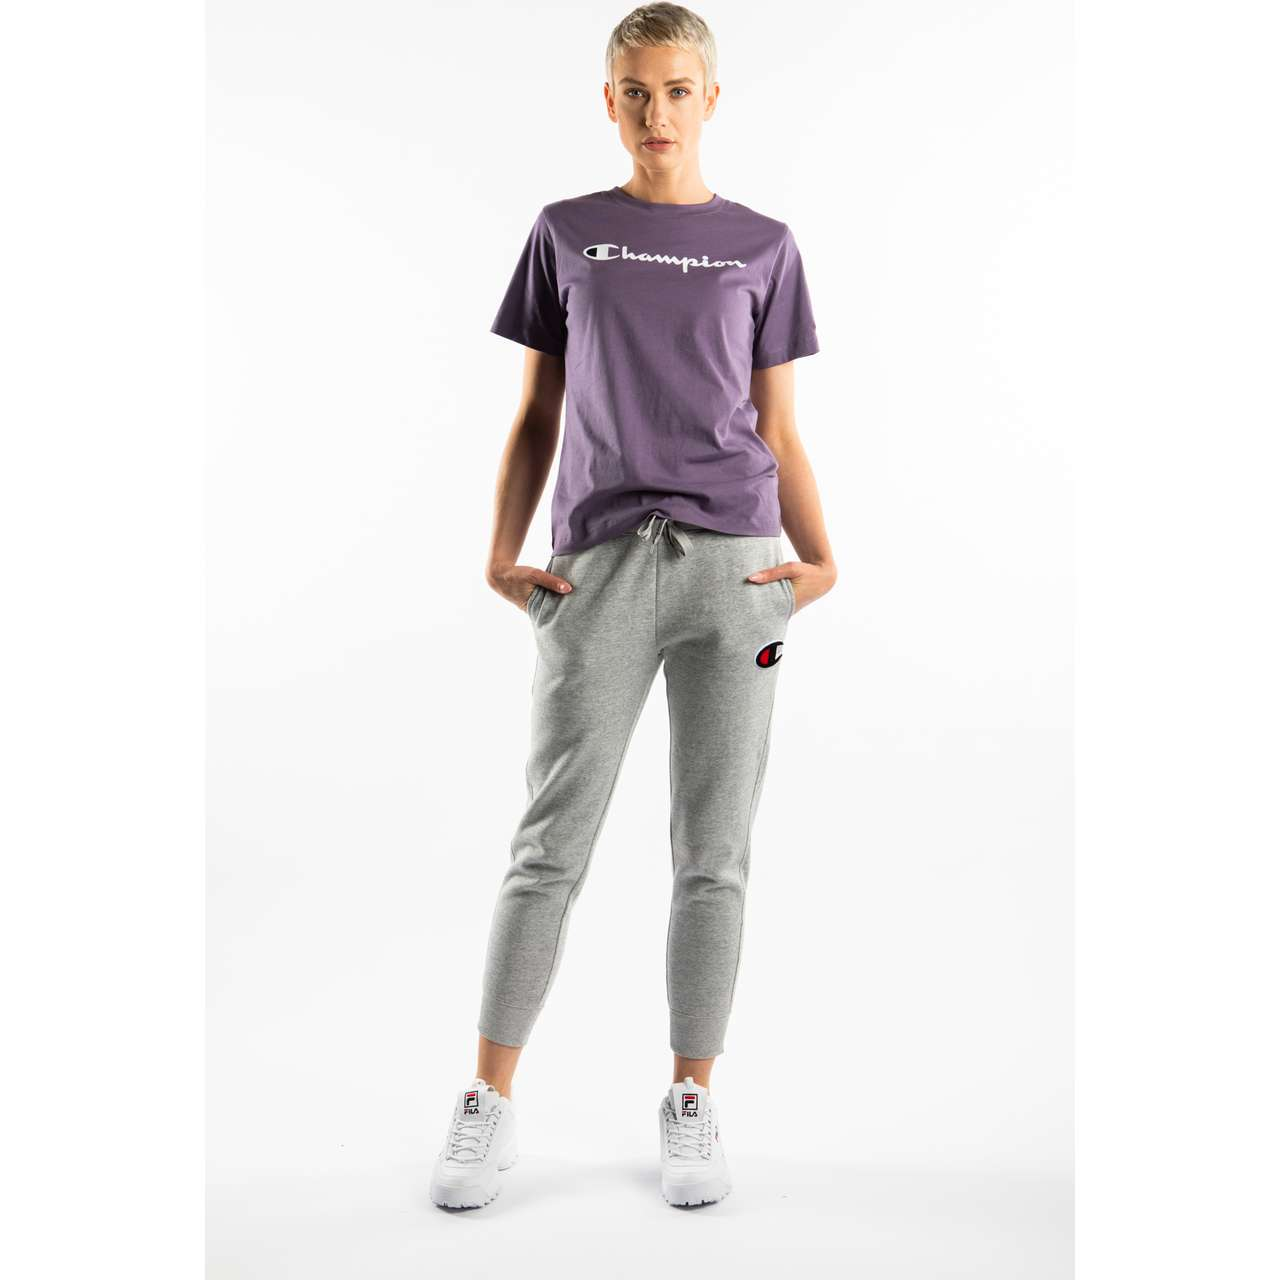 Koszulka Champion  <br/><small>CREWNECK T-SHIRT VS050 PURPLE </small>  111971-VS050